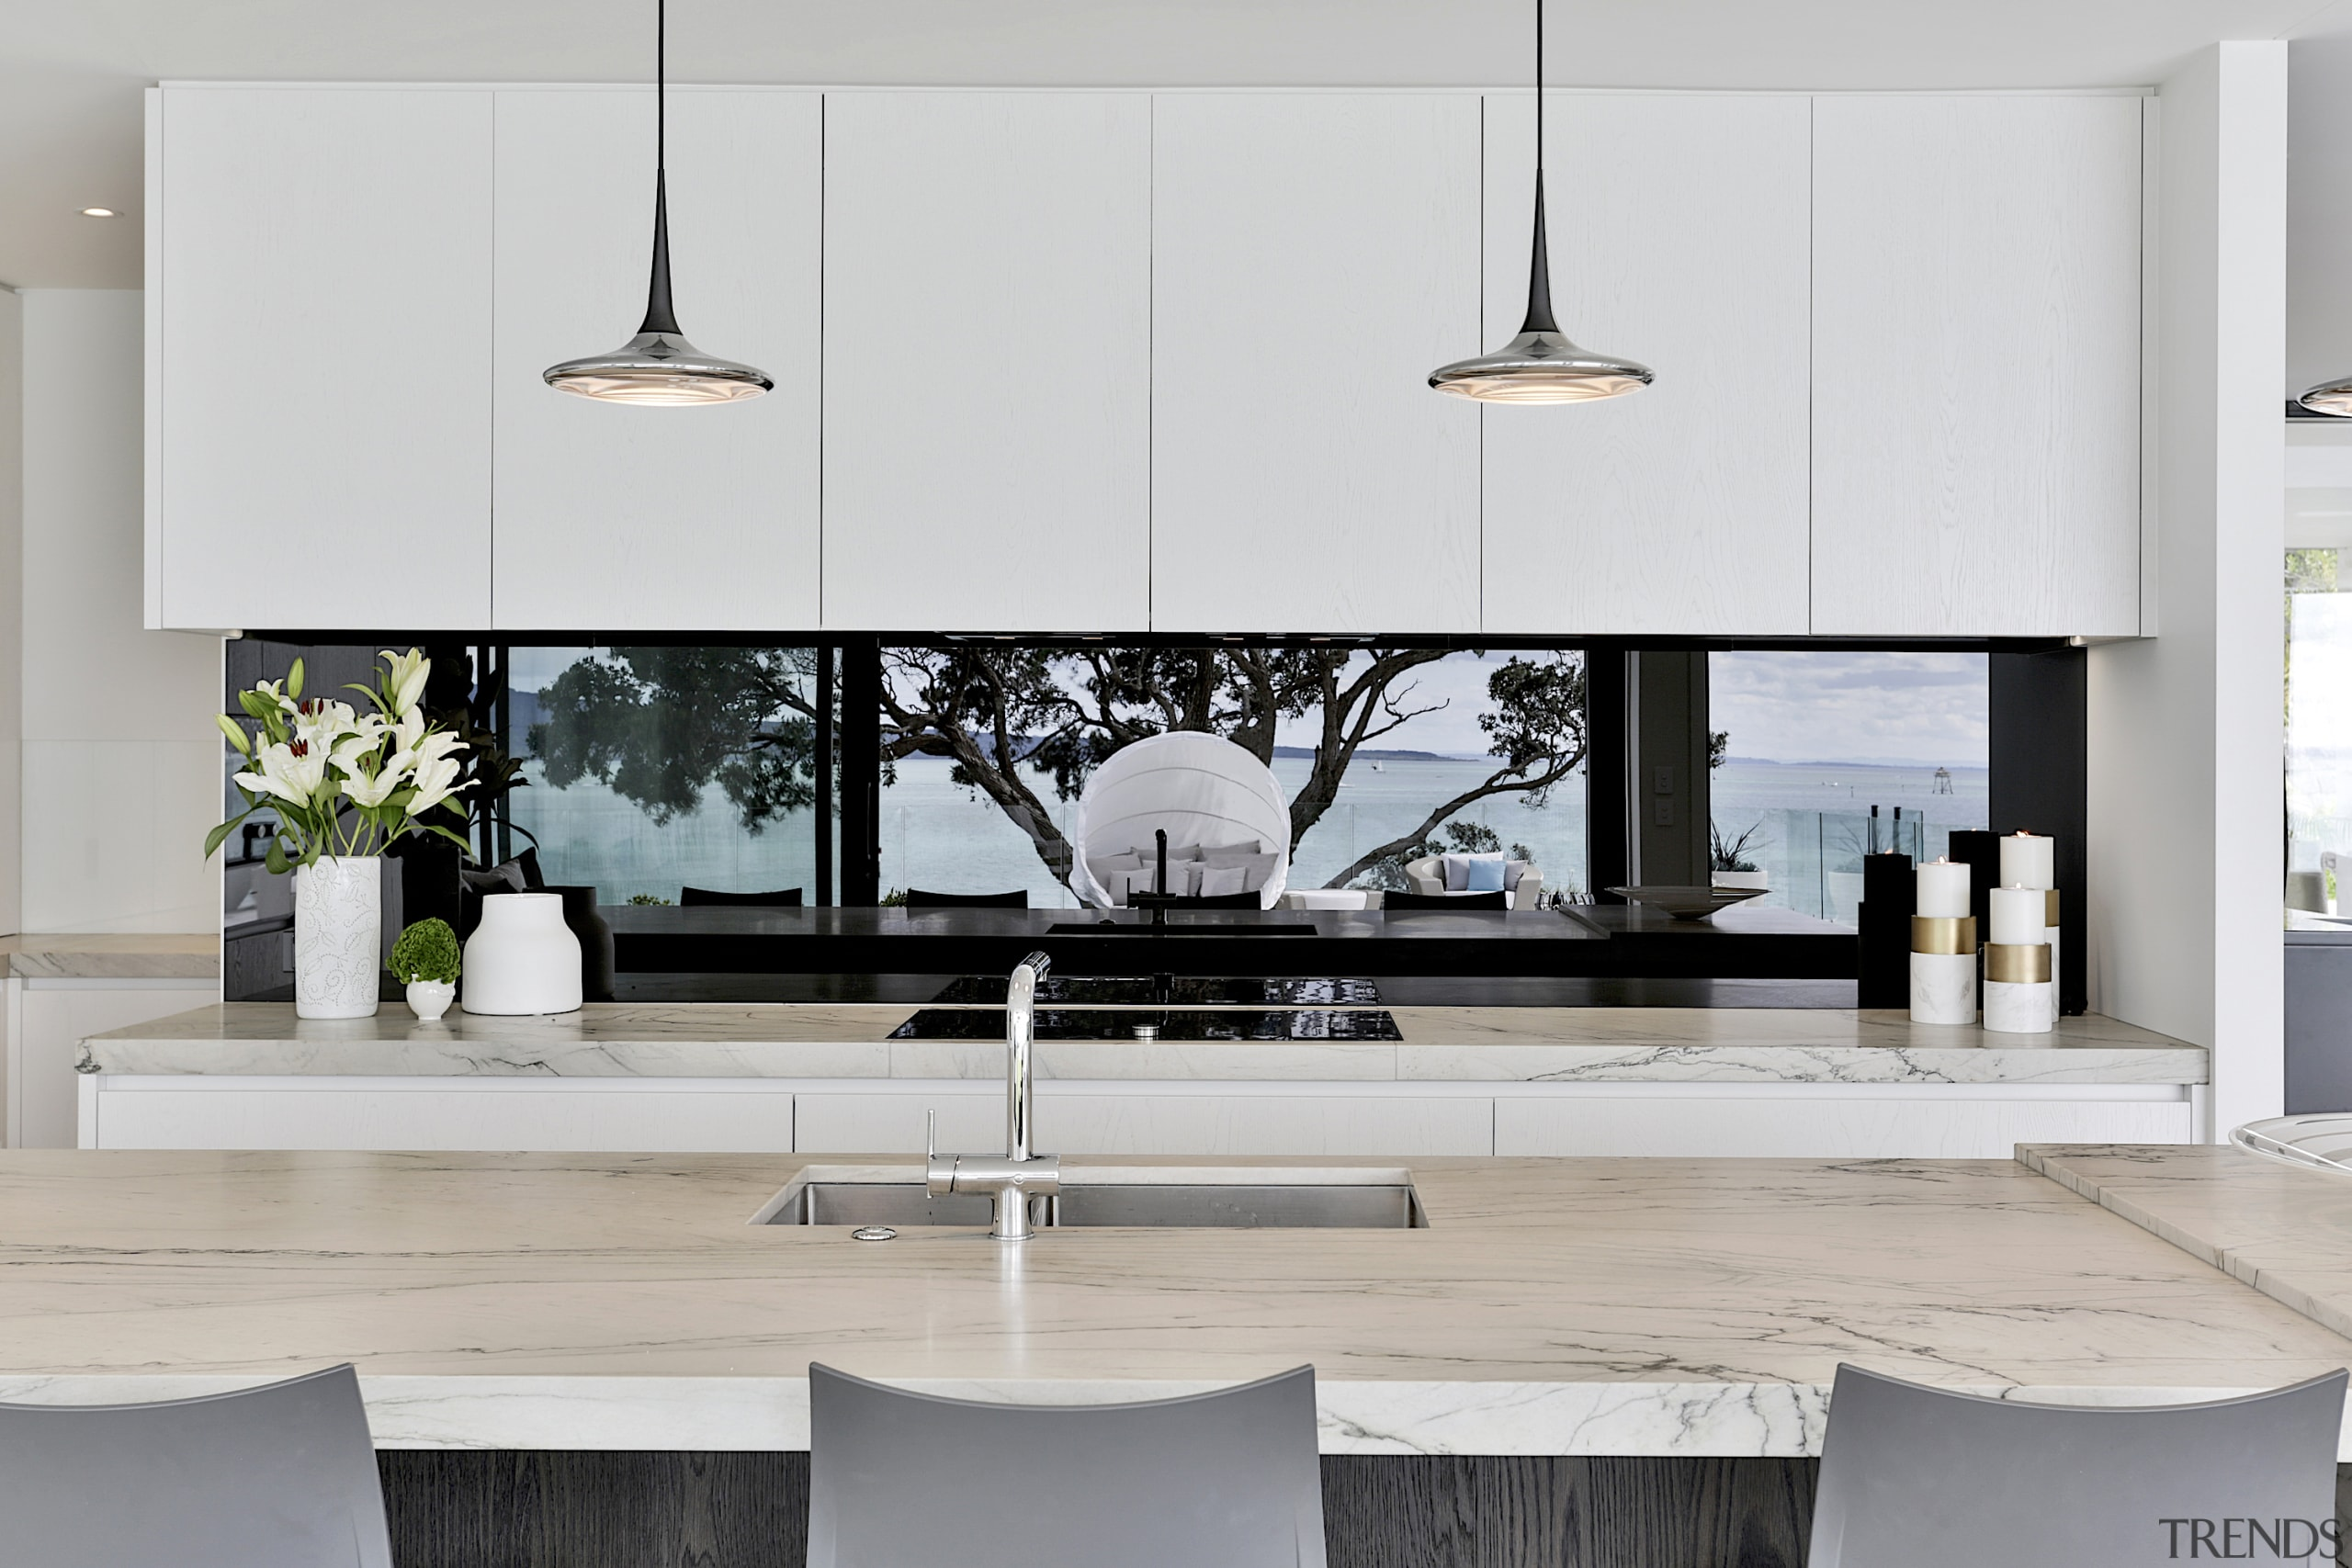 A glass mirrored splashback reflects harbour views for gray, white